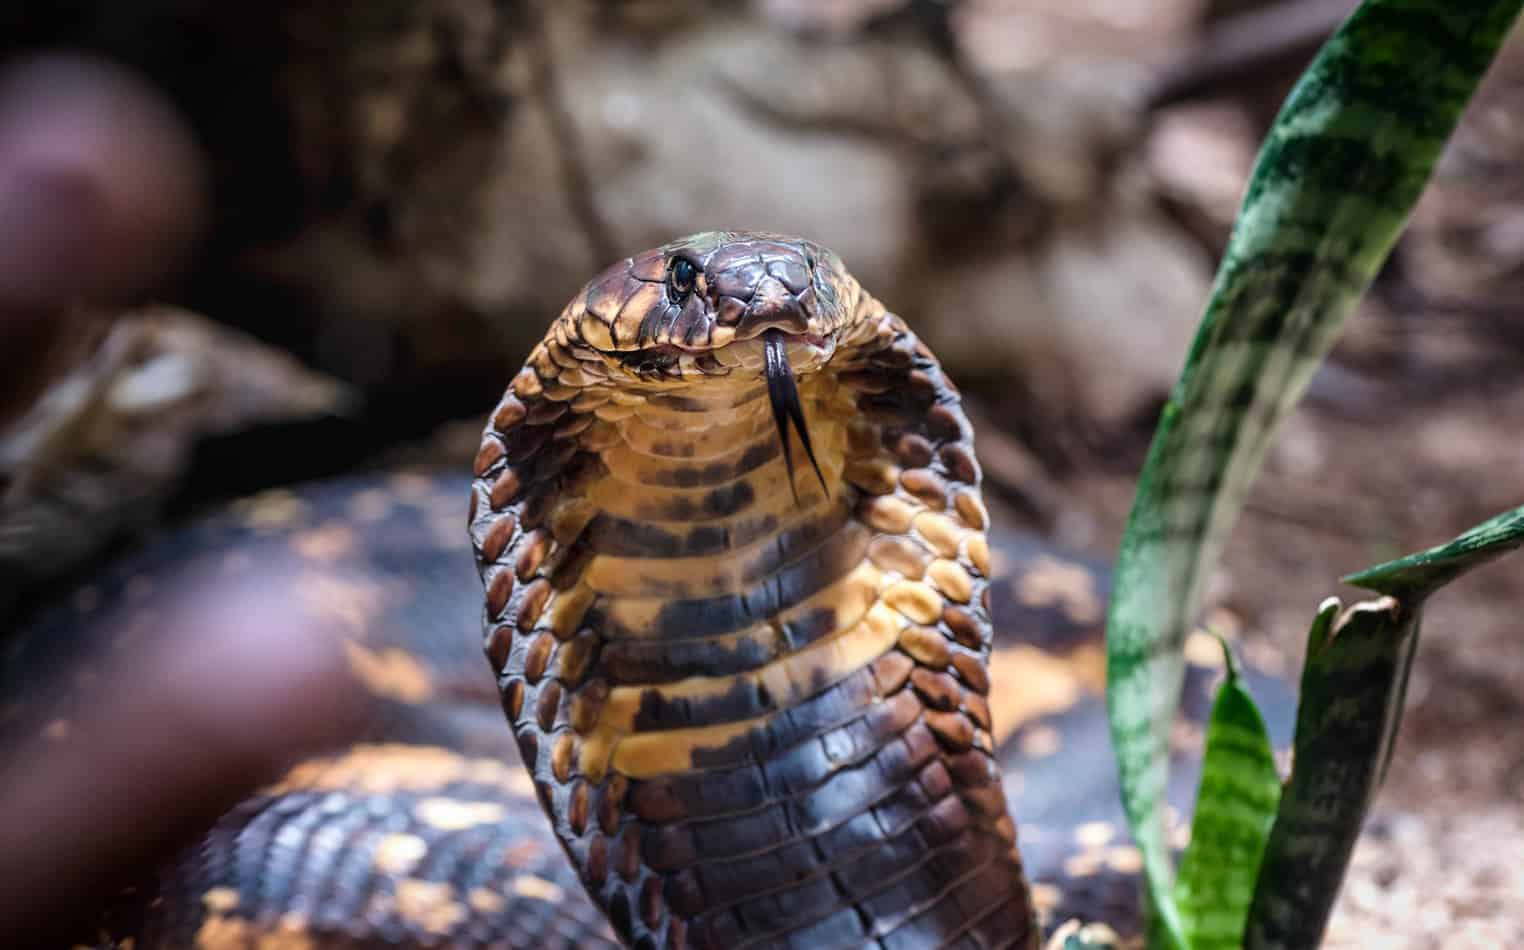 How Many Times a Year do King Snakes Lay Eggs?